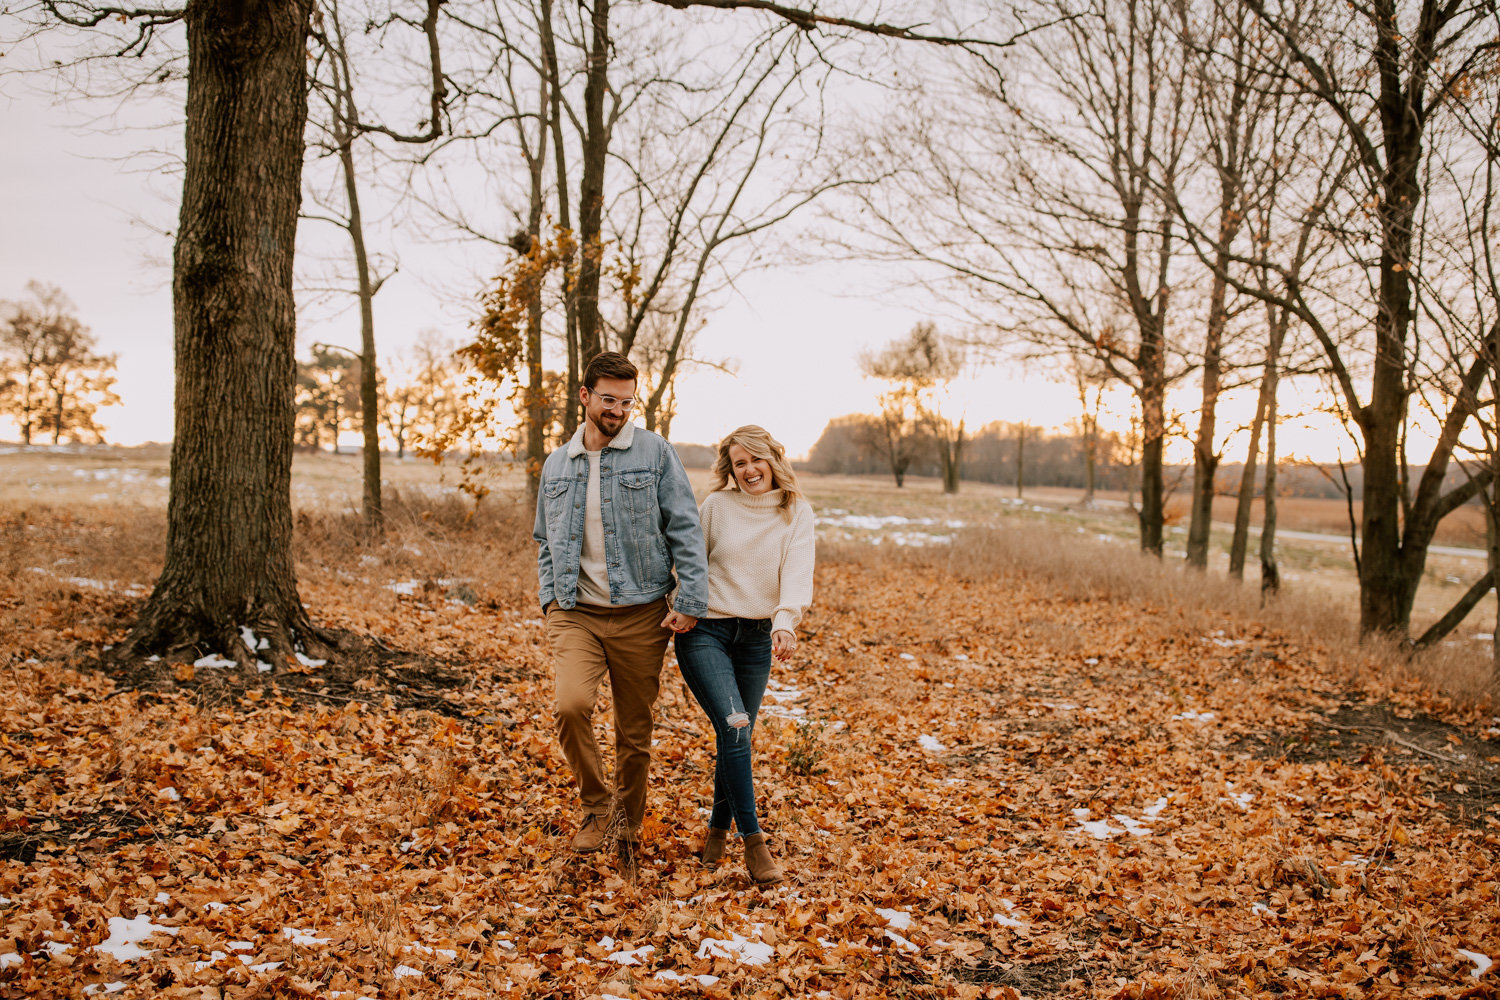 Fun-fall-engagement-session-prophetstown-state-park-35